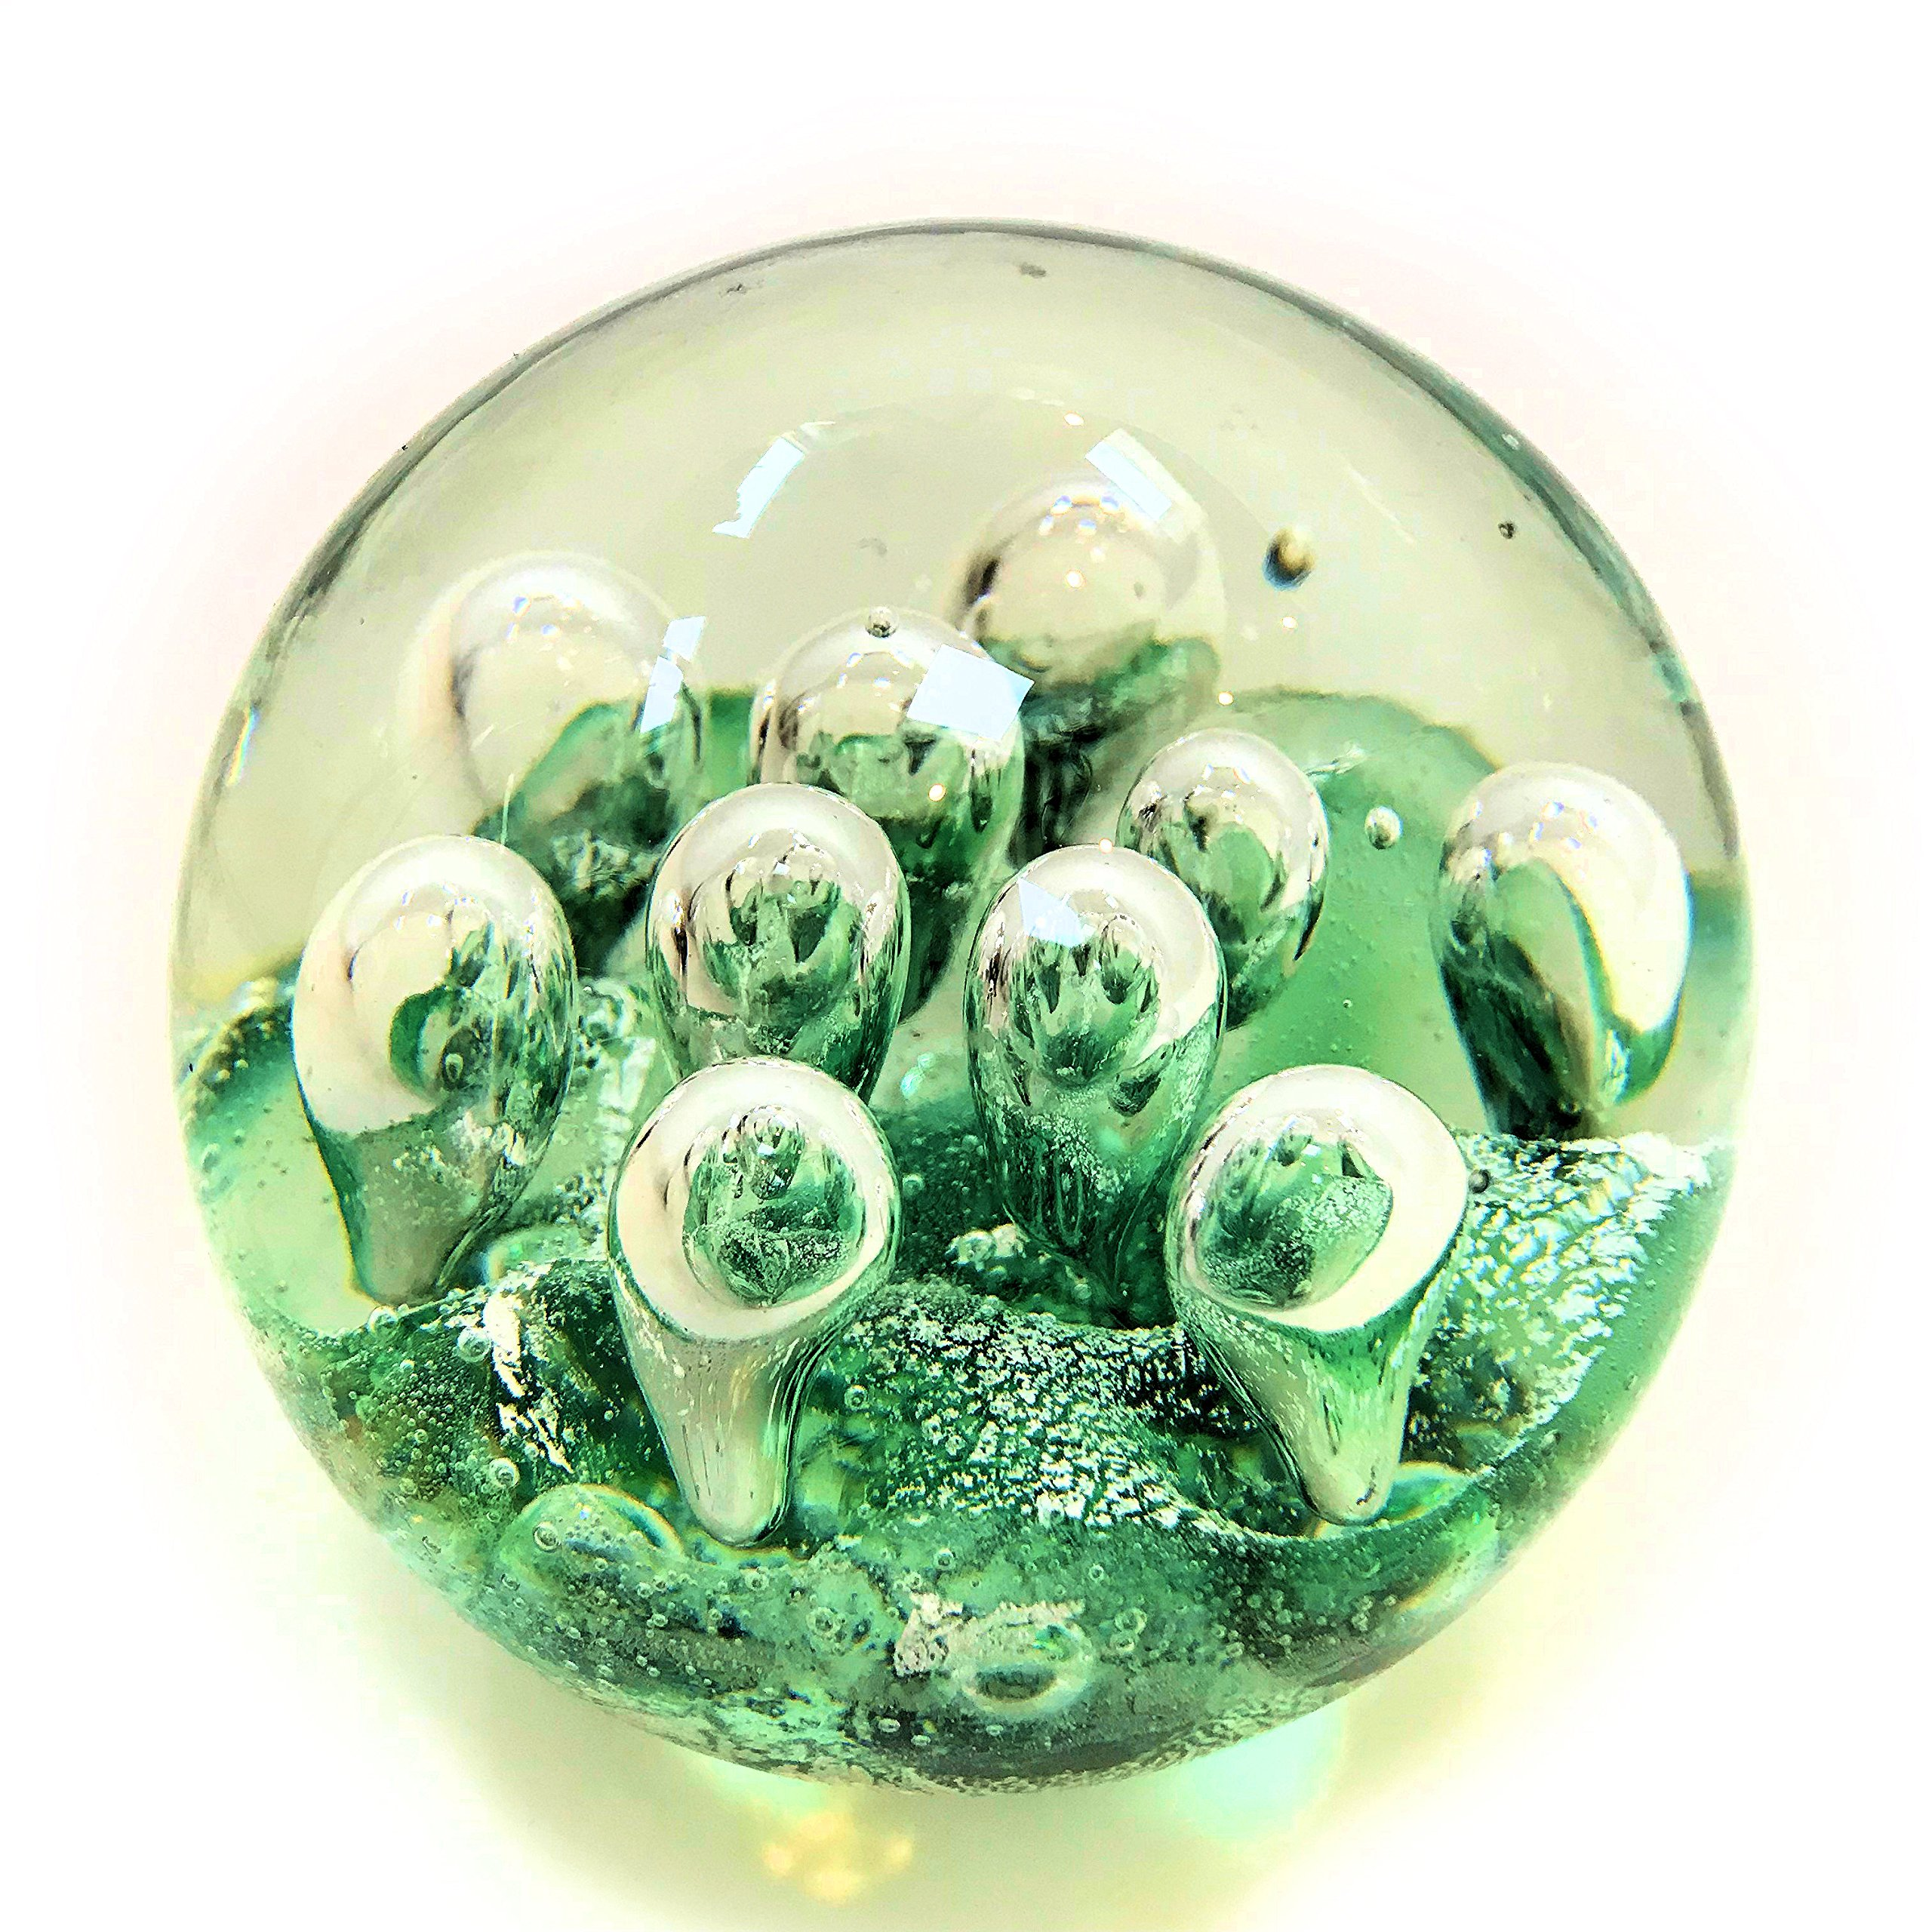 Whole House Worlds The Emerald Green Dynamic Bubbles, Paperweight, Handcrafted Art Glass, 3 1/2 Inches, By